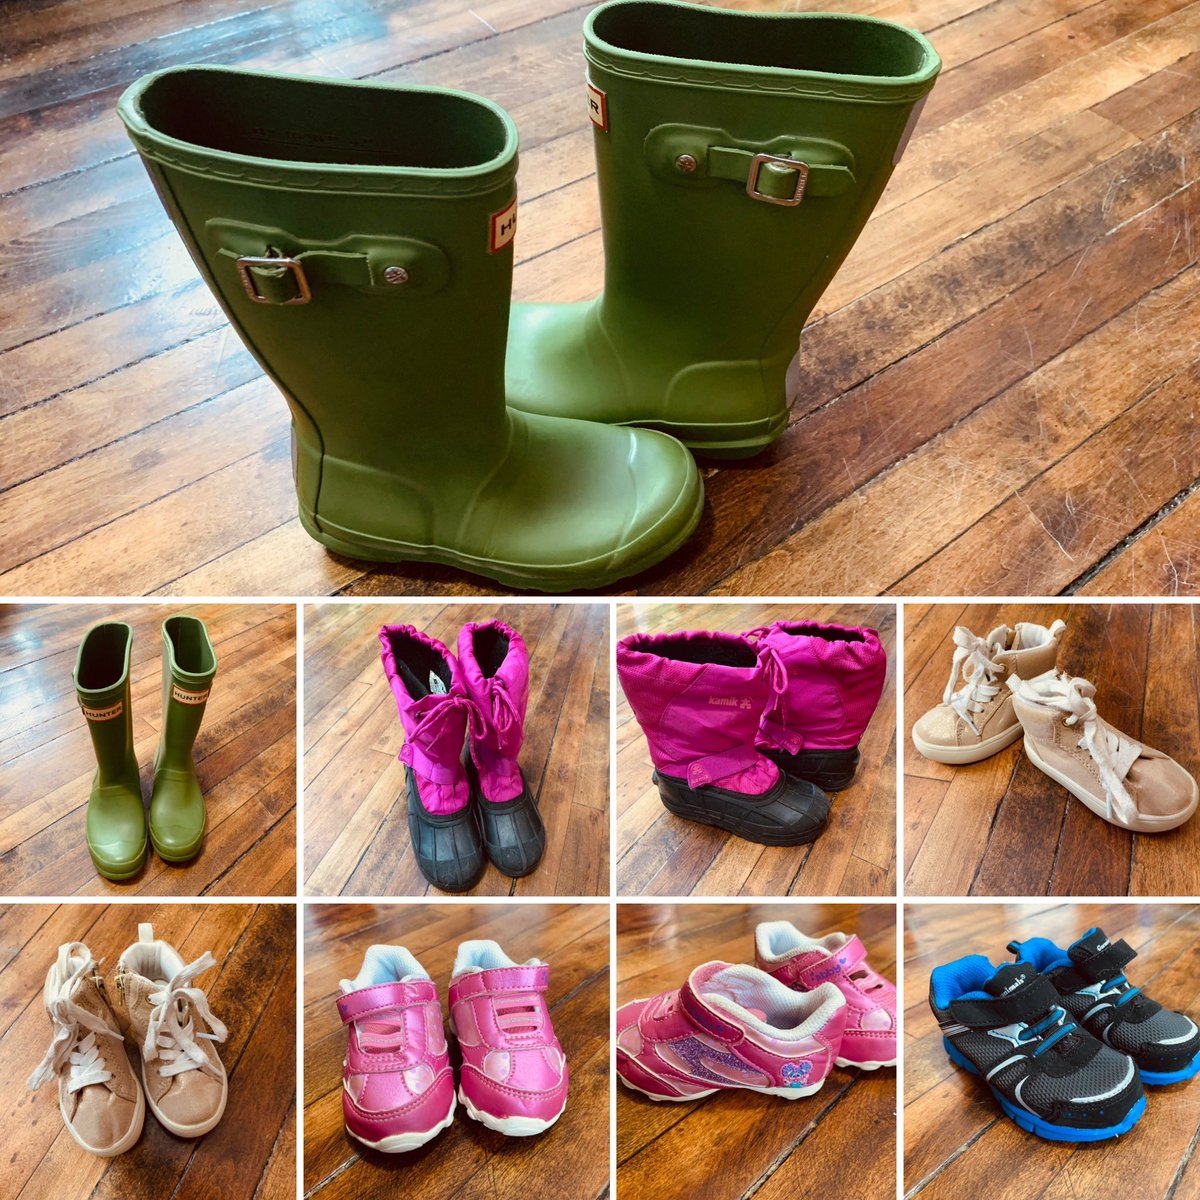 Rain, snow or fun in the sun. We have your feet covered at Forever My Baby. Open today until 5pm ❤️ ❤️ ❤️. #4eveybaby2019 #shoplocal #shopsmall #itmatters